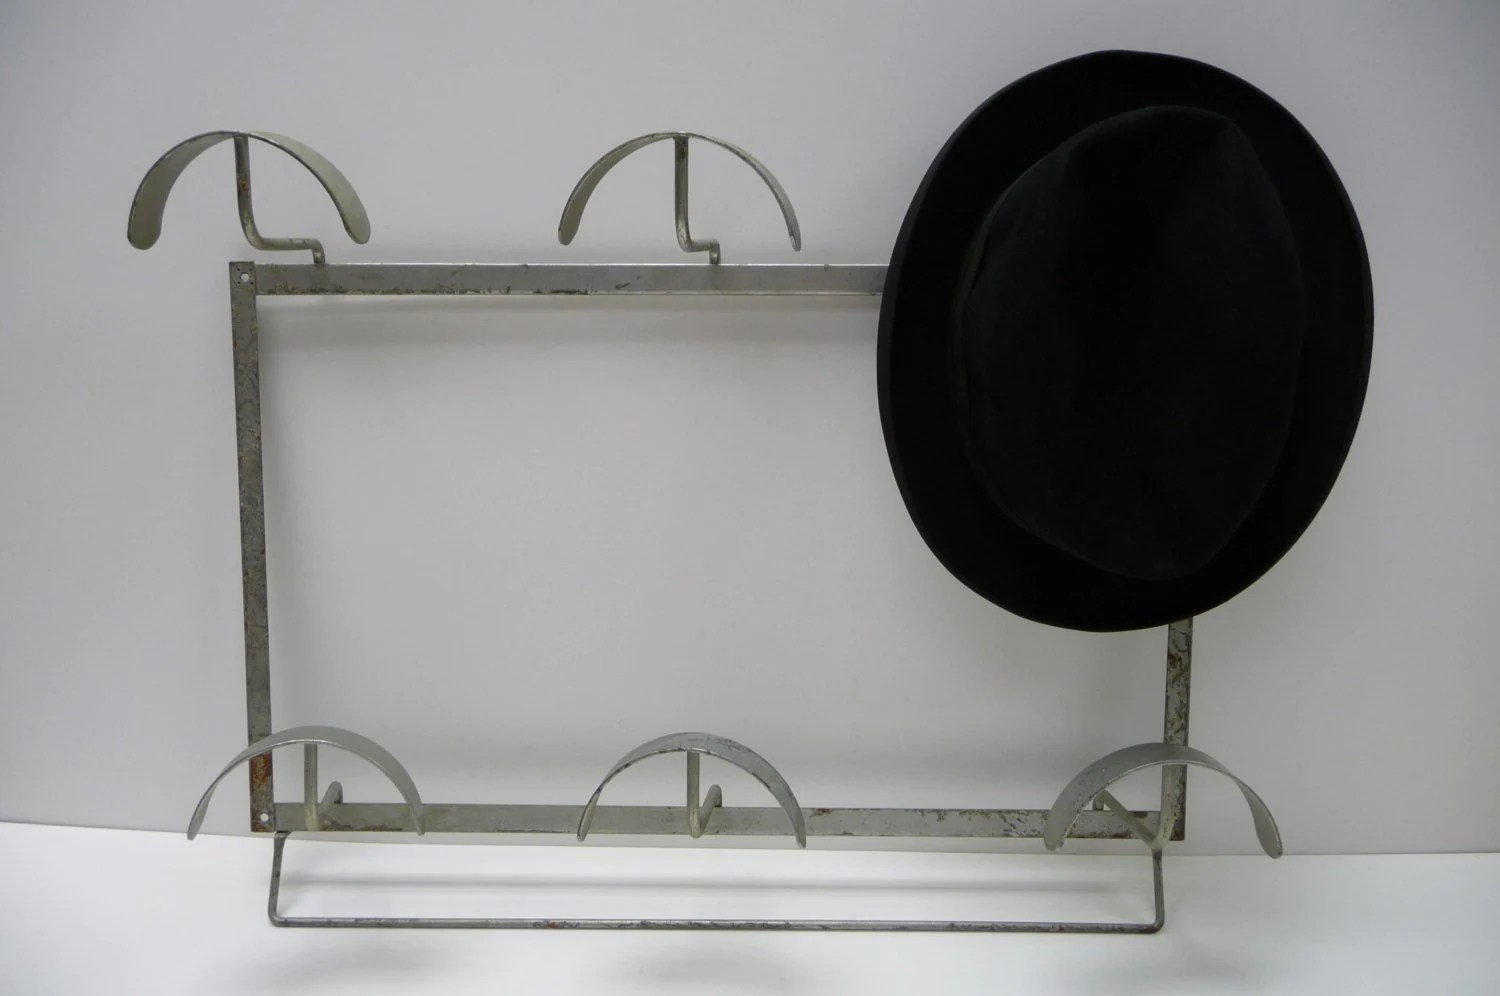 Hat Holders For Walls Vintage Metal Hat Rack Store Display Wall Hanging By